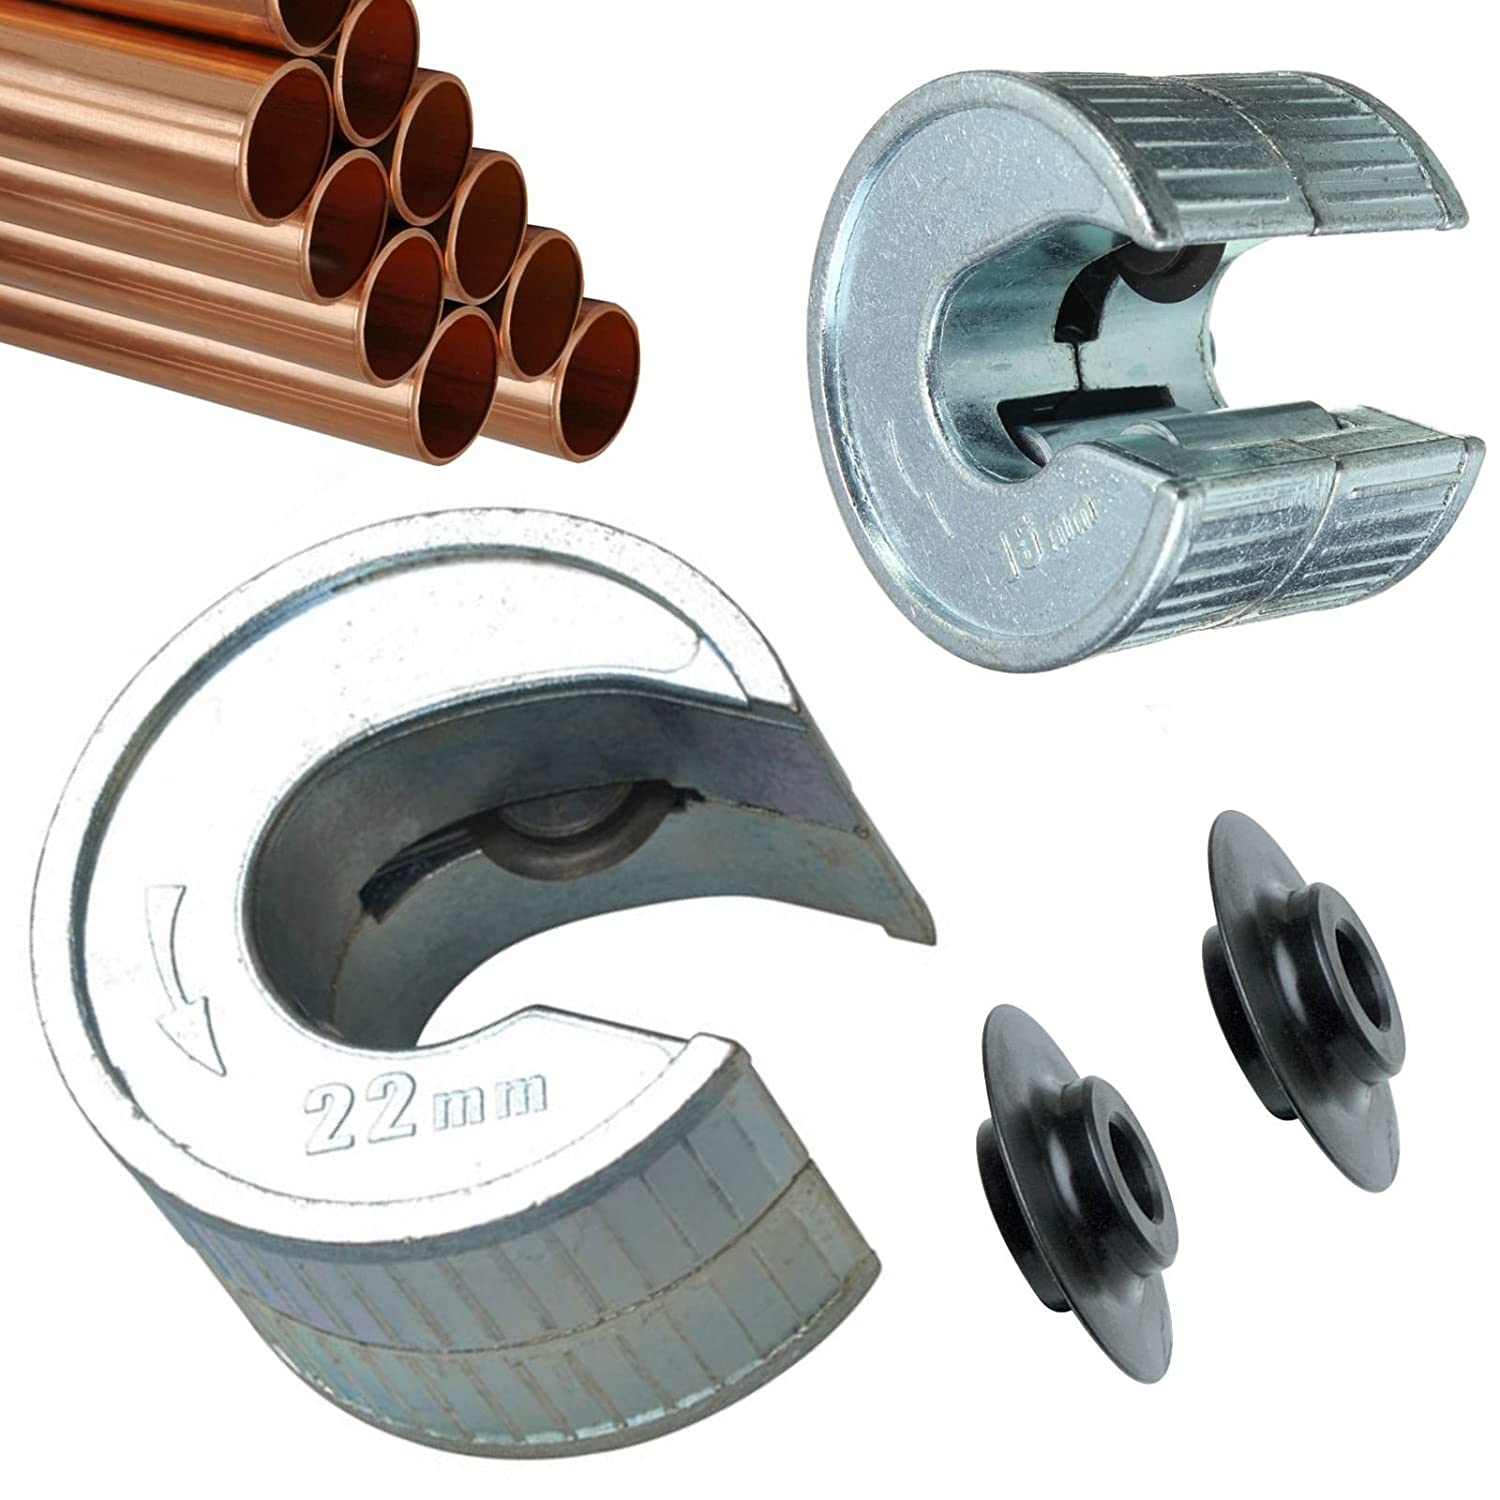 15 /& 22mm Copper Pipe Tube Slice Cutter Plumbing Self Locking and Self Adjusting